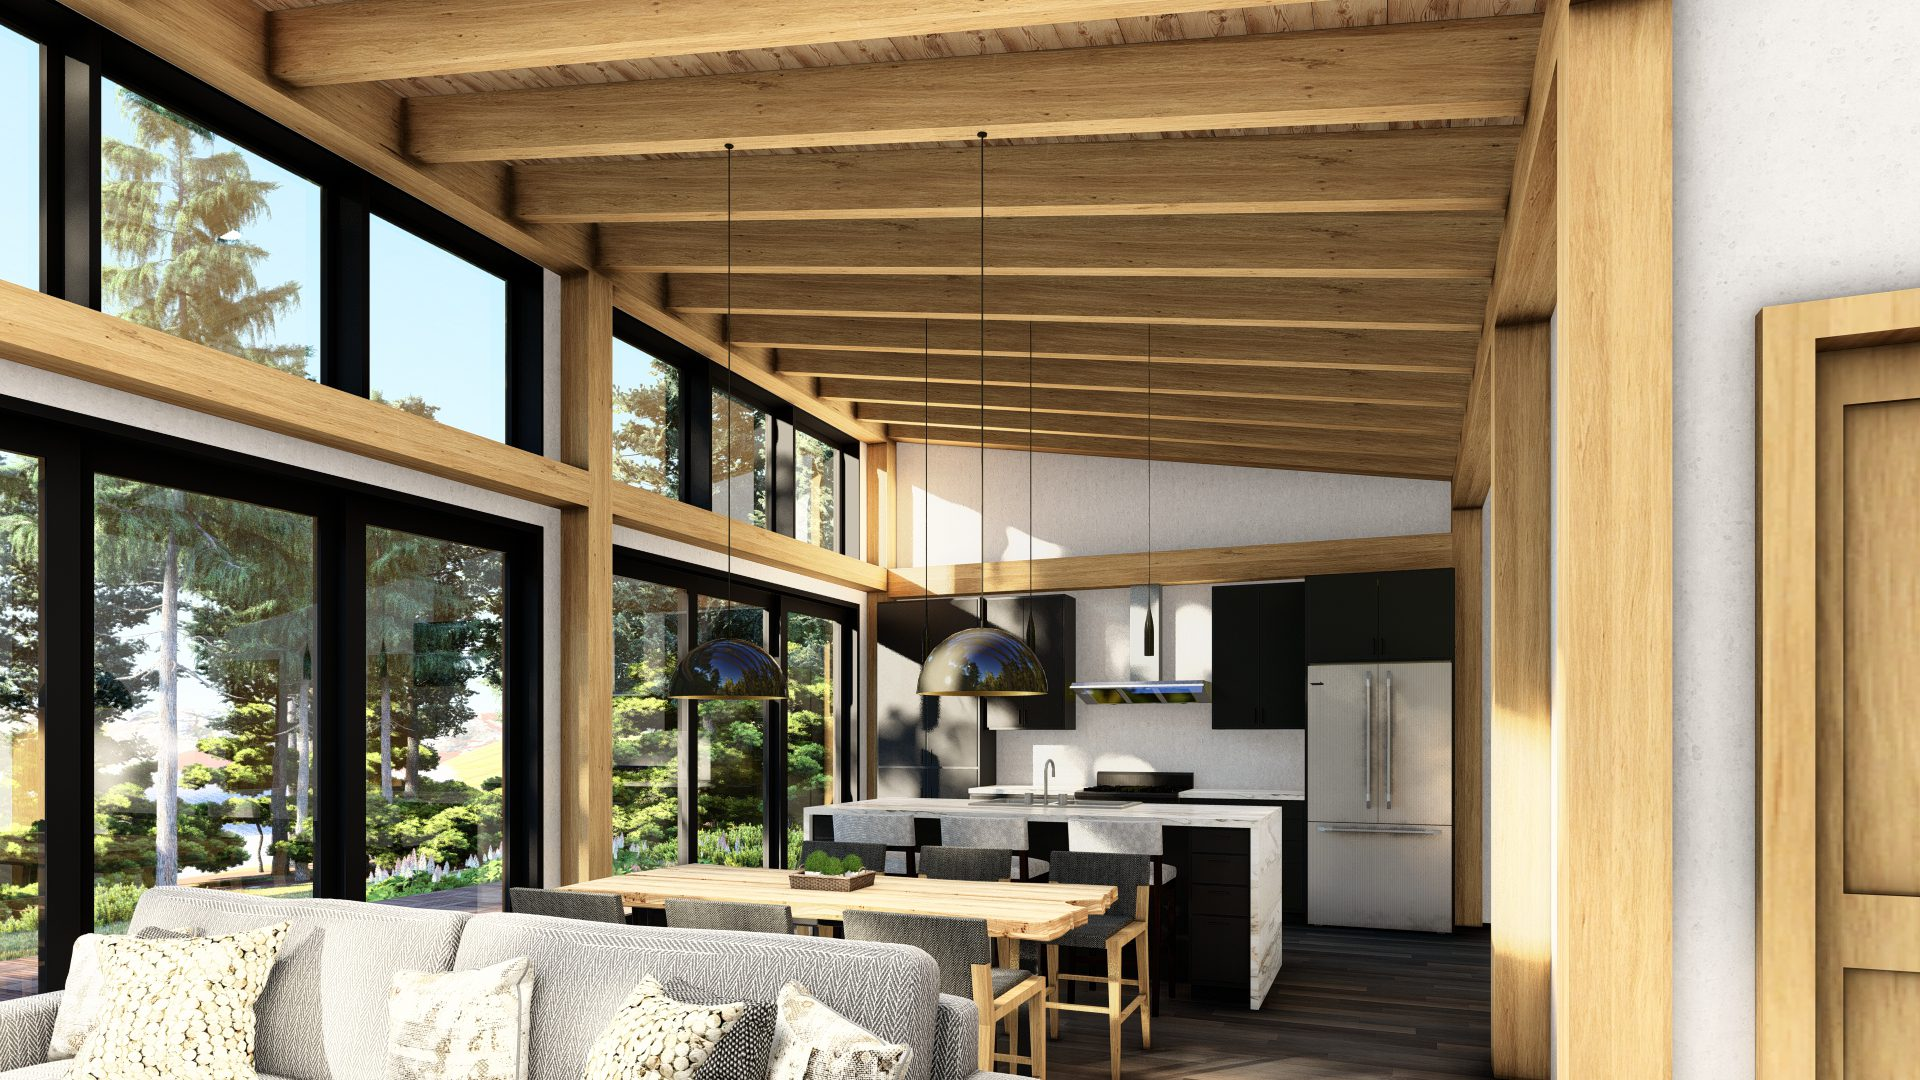 Normerica Timber Frames, House Plan, The Bayfield 3945, Interior, Dining Room, Living Room, Kitchen, Open Concept